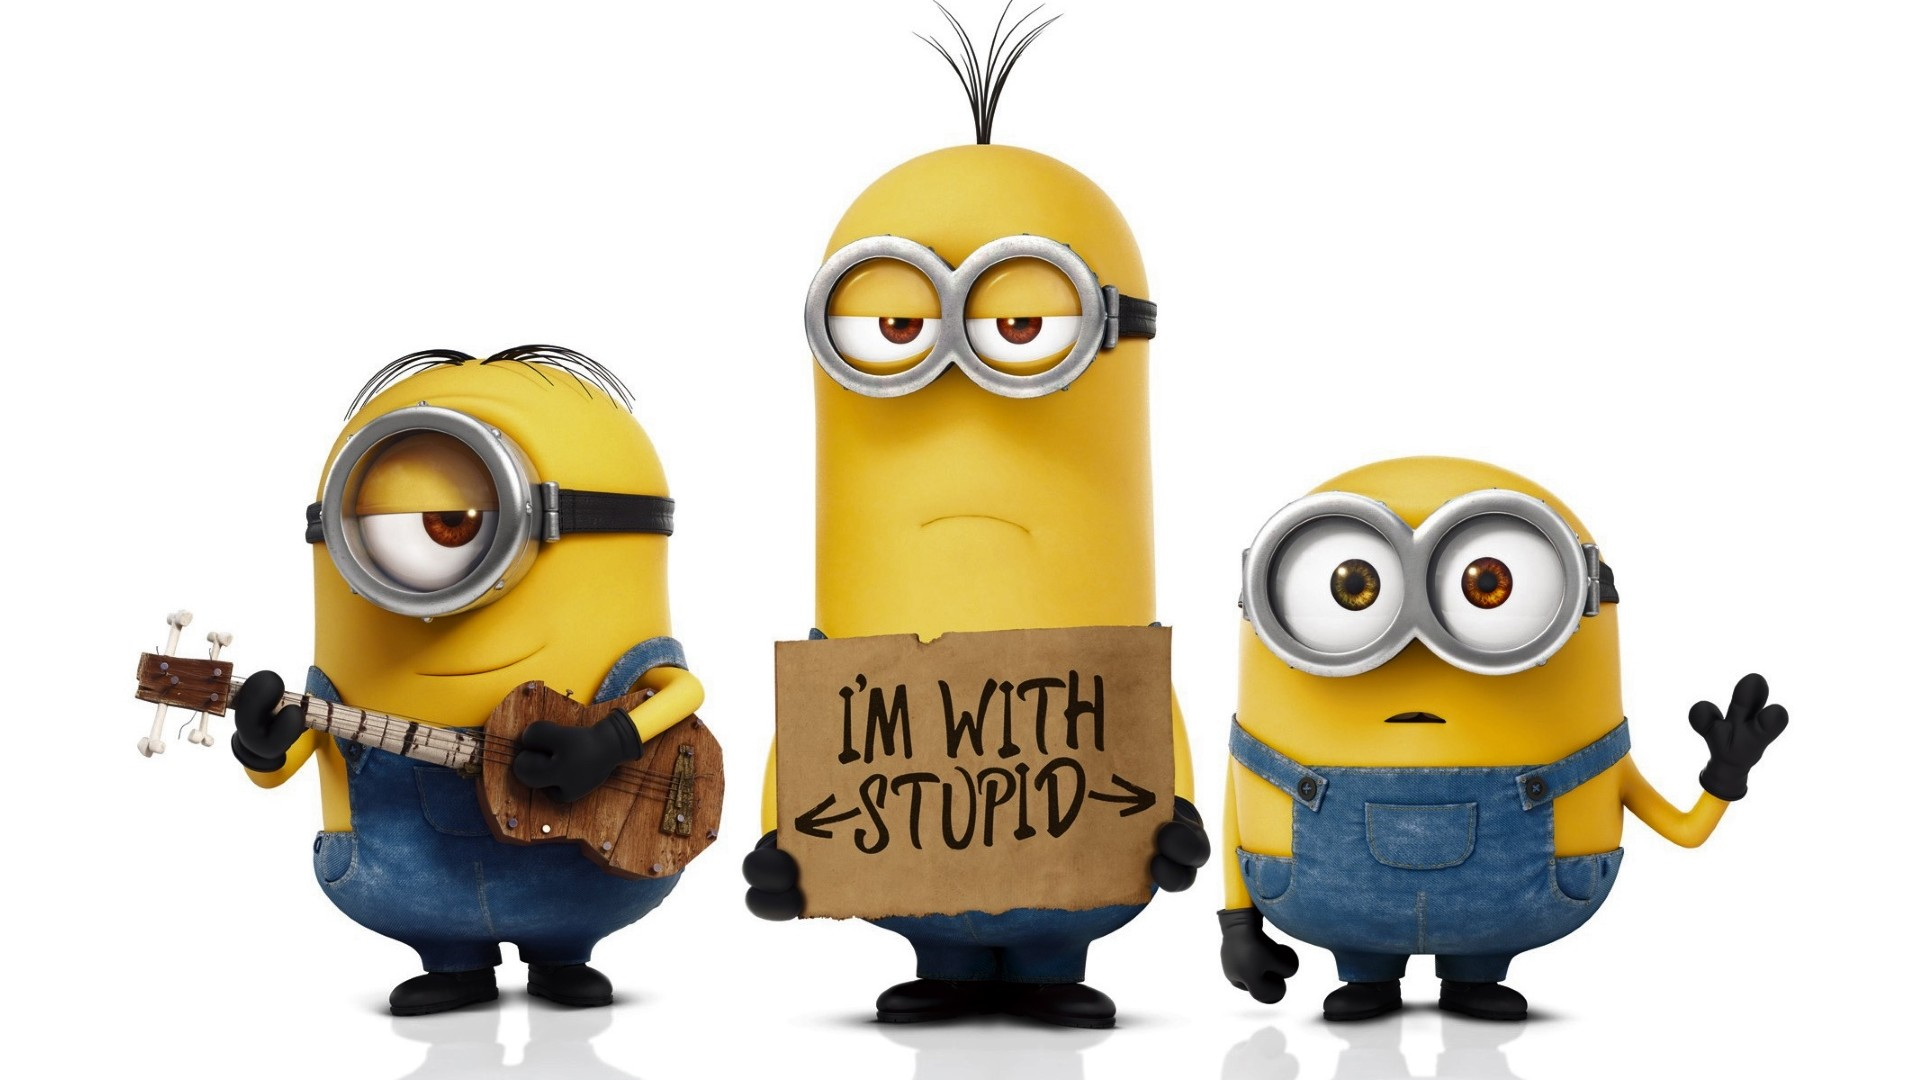 3 funny Minions desktop background: